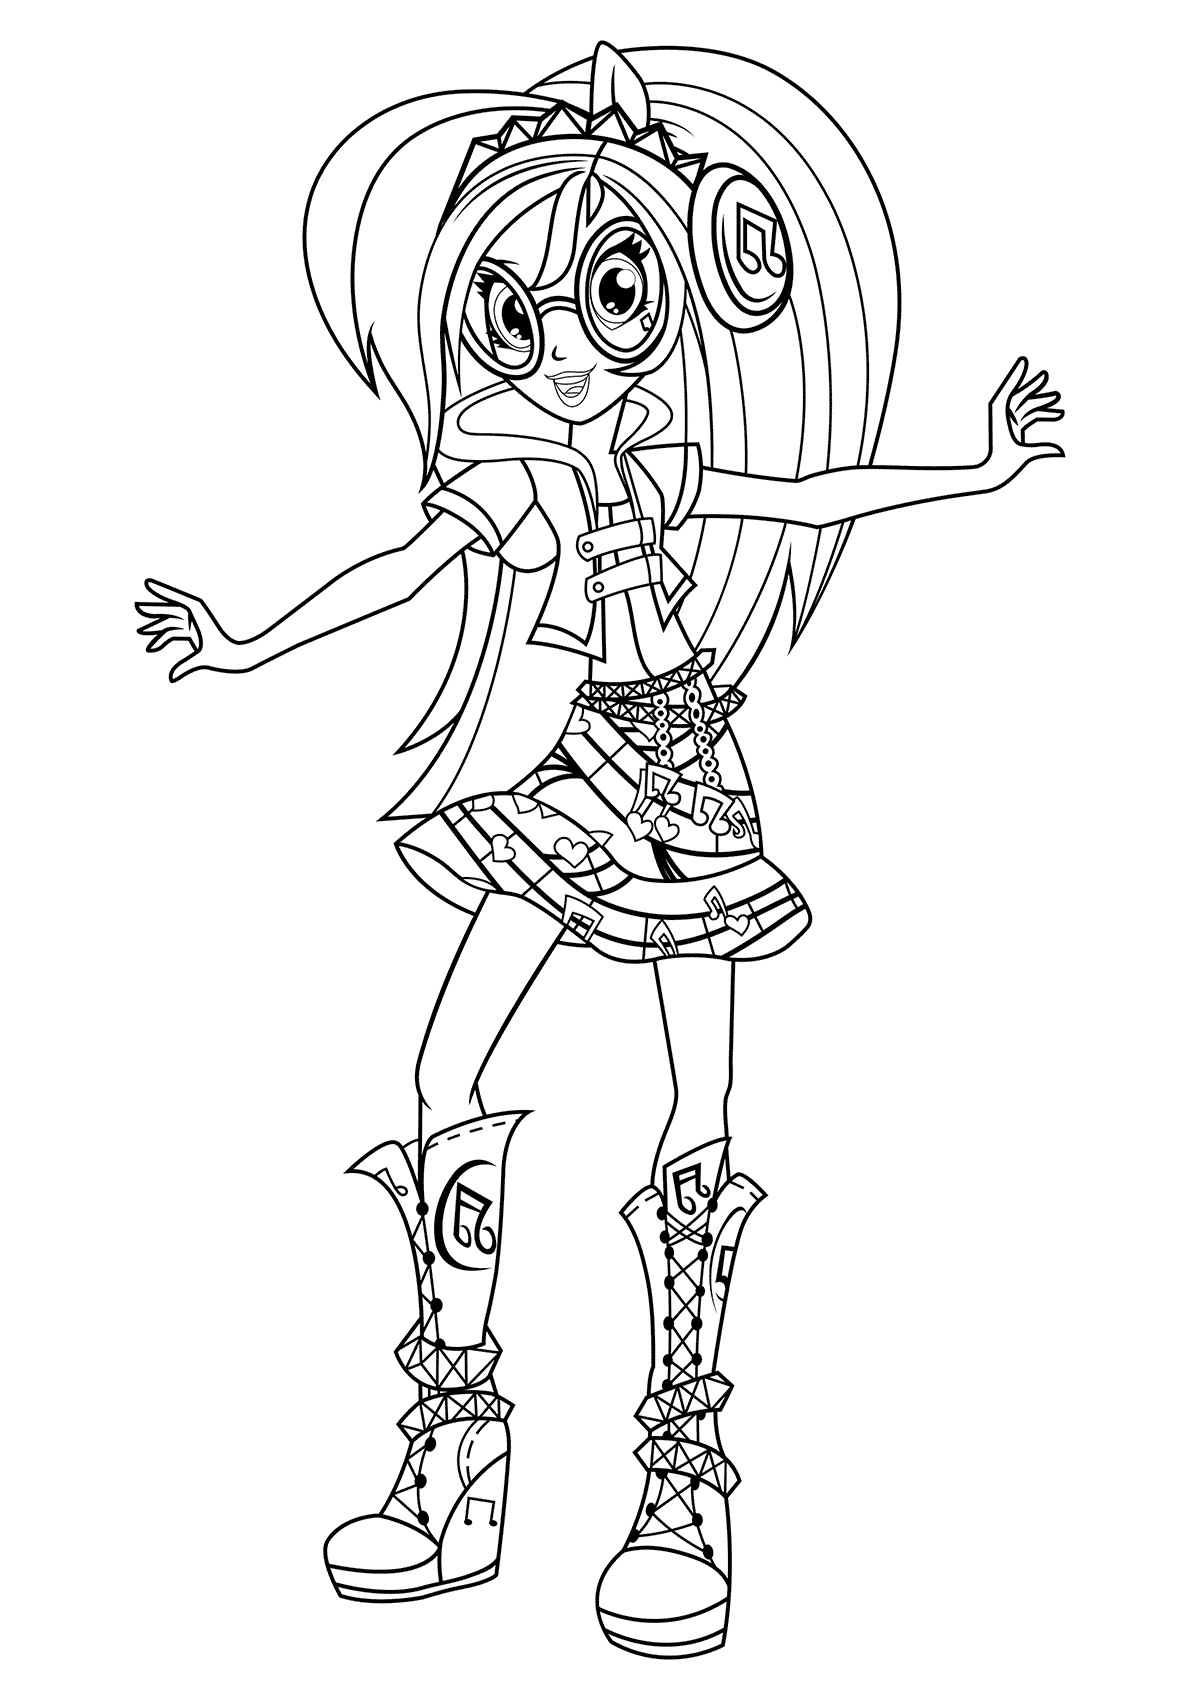 equestria girls mlp coloring page rainbow rocks equestria girls coloring pages sketch coloring girls page equestria mlp